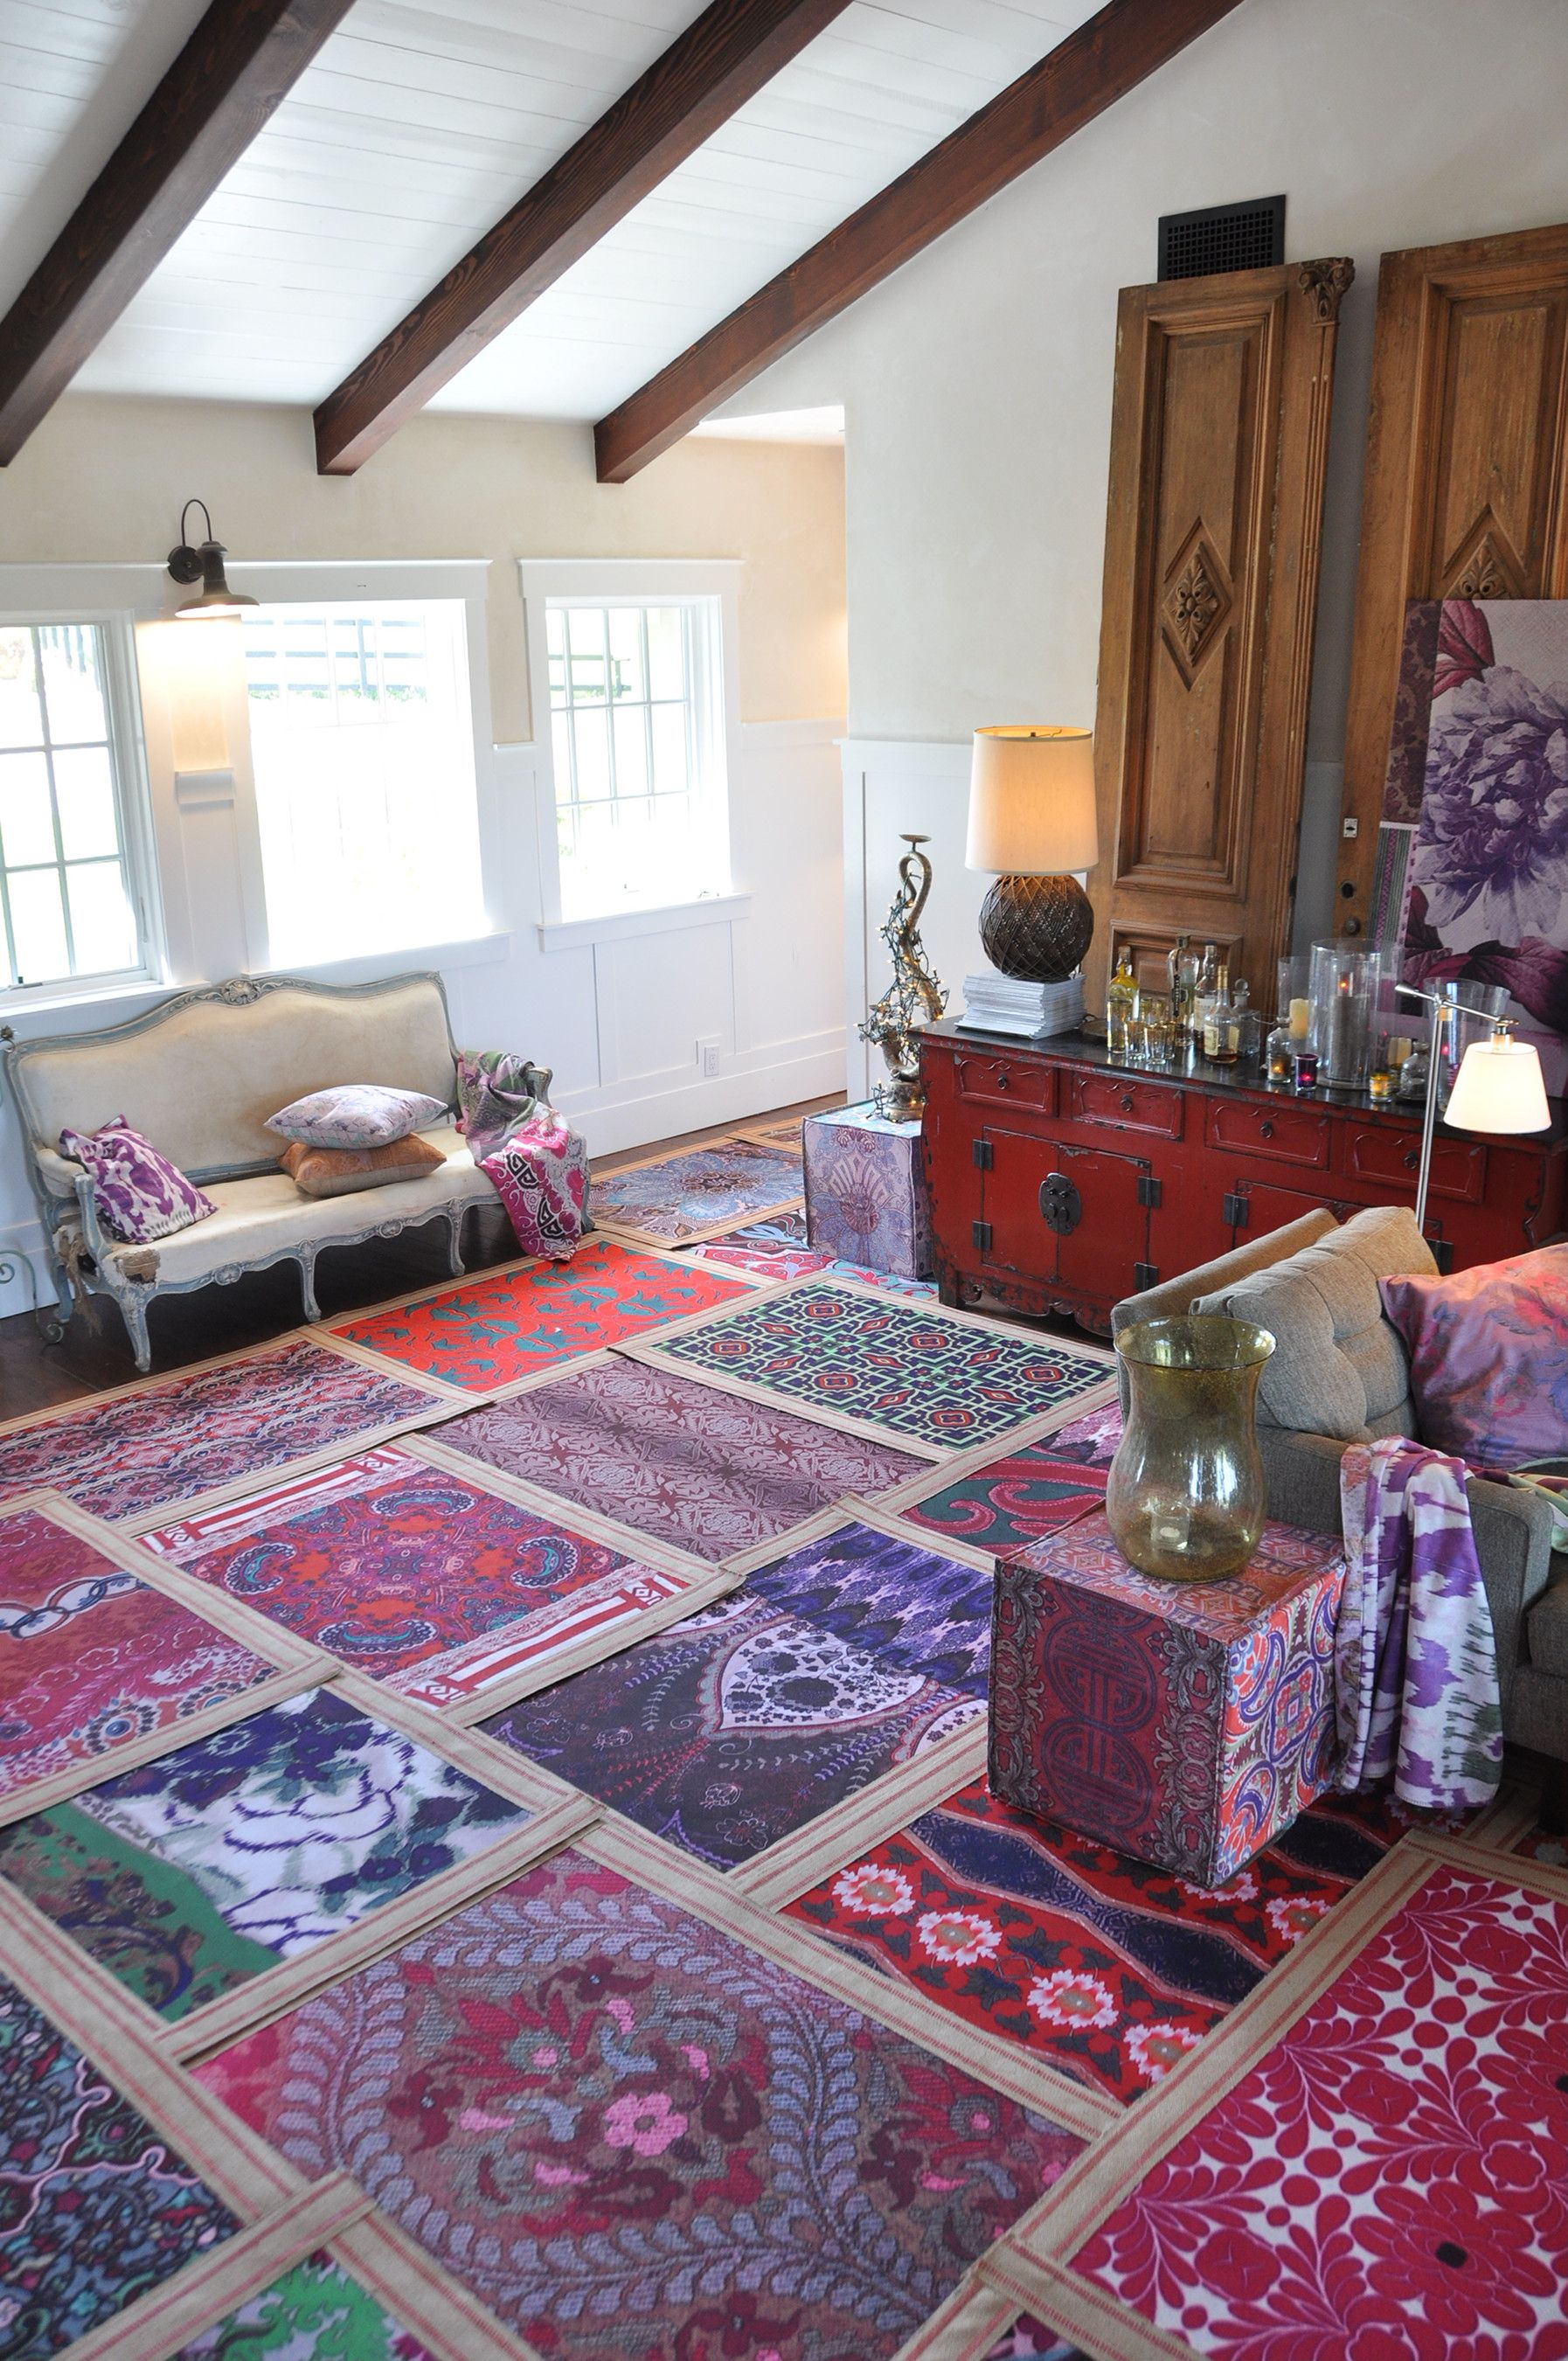 use multiple small area rugs instead of one large one for added